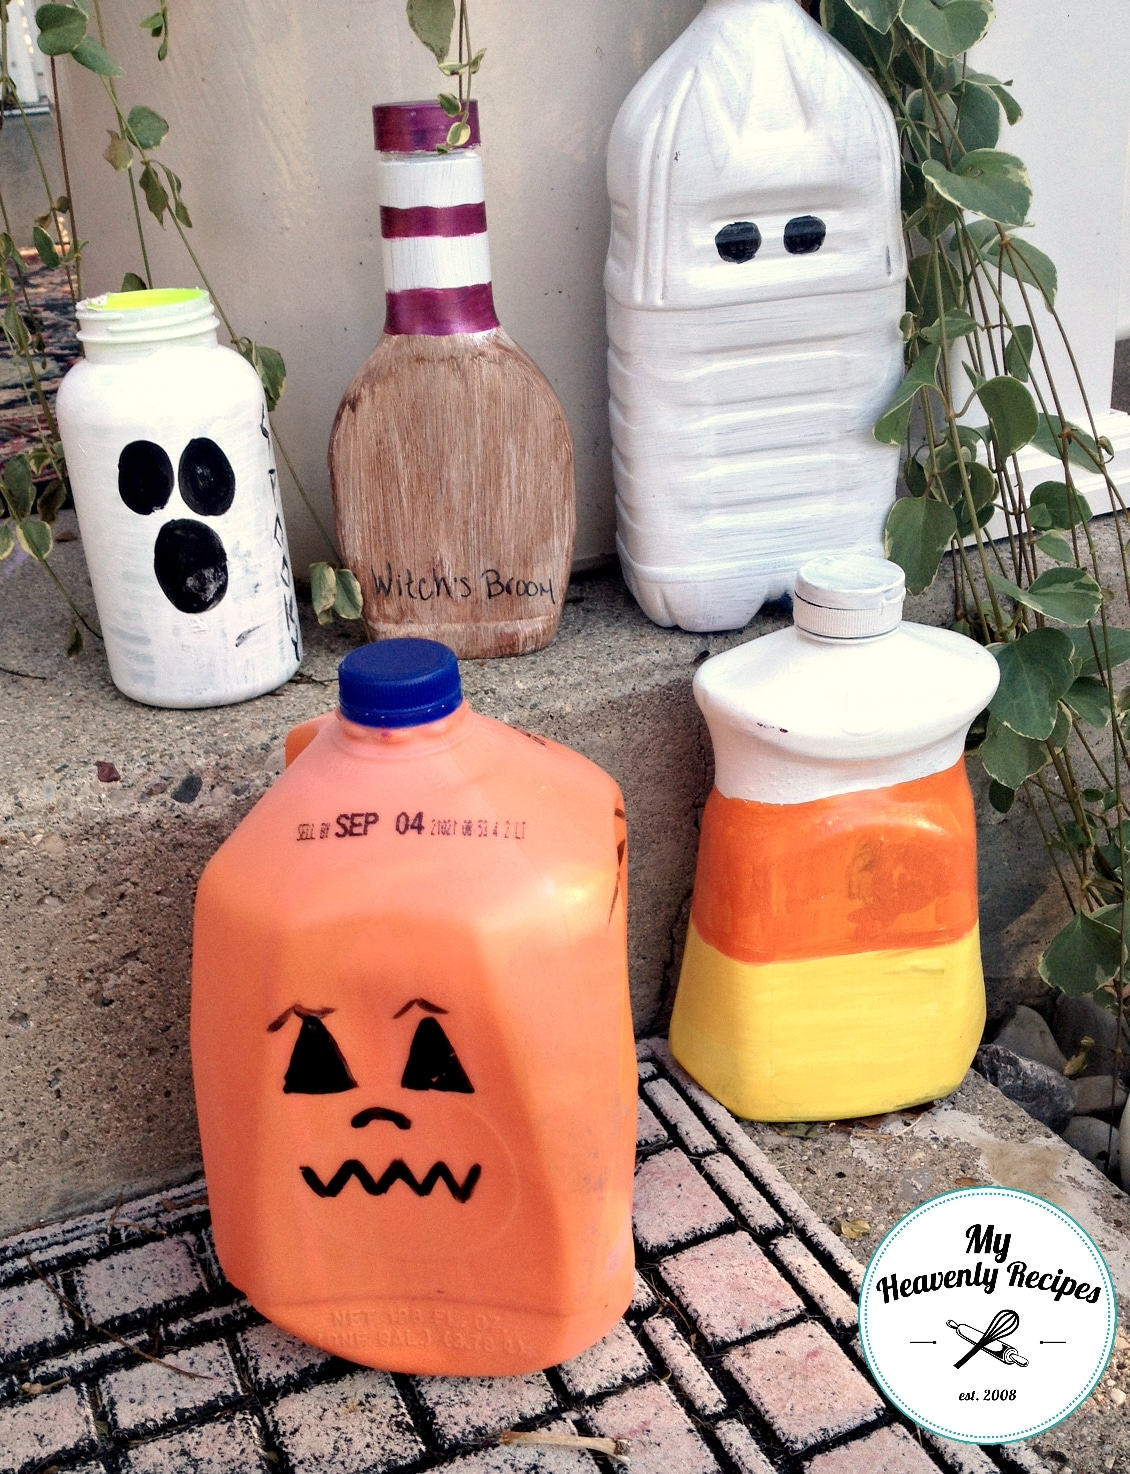 diy halloween decorations made from plastic jugs. Black Bedroom Furniture Sets. Home Design Ideas